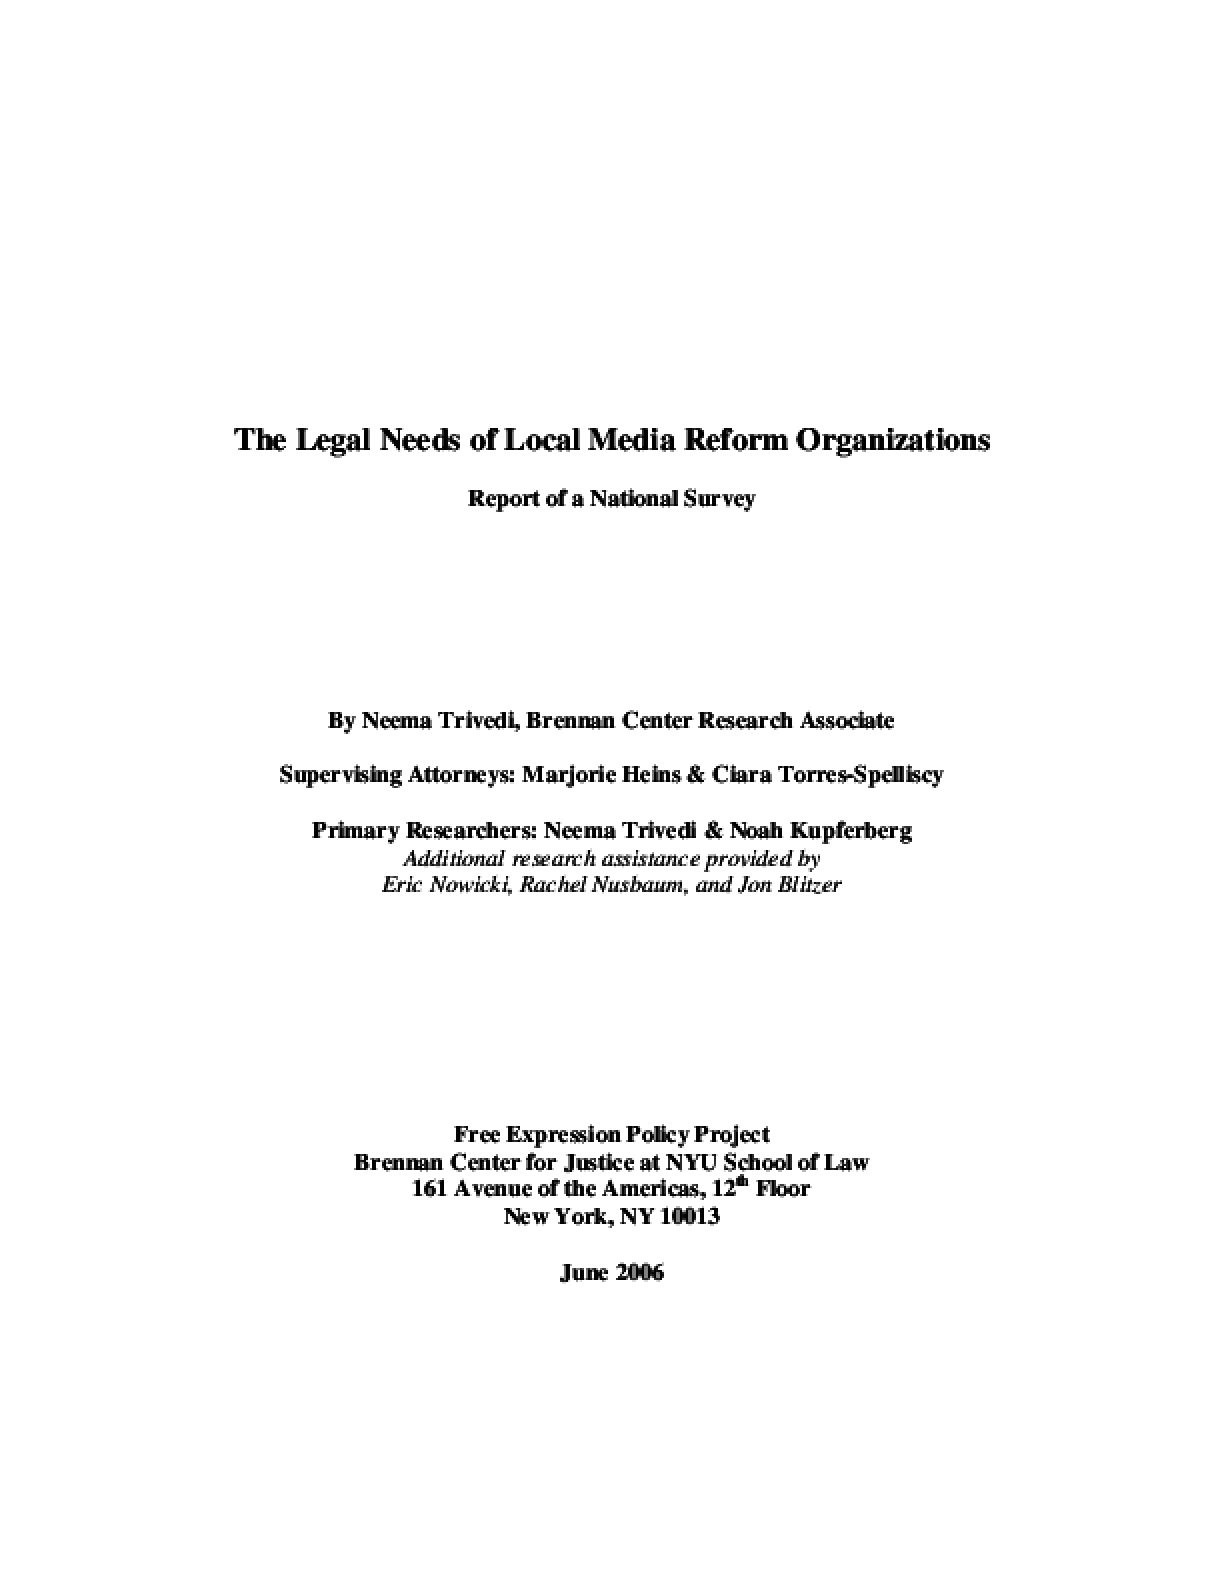 The Legal Needs of Local Media Reform Organizations: Report of a National Survey